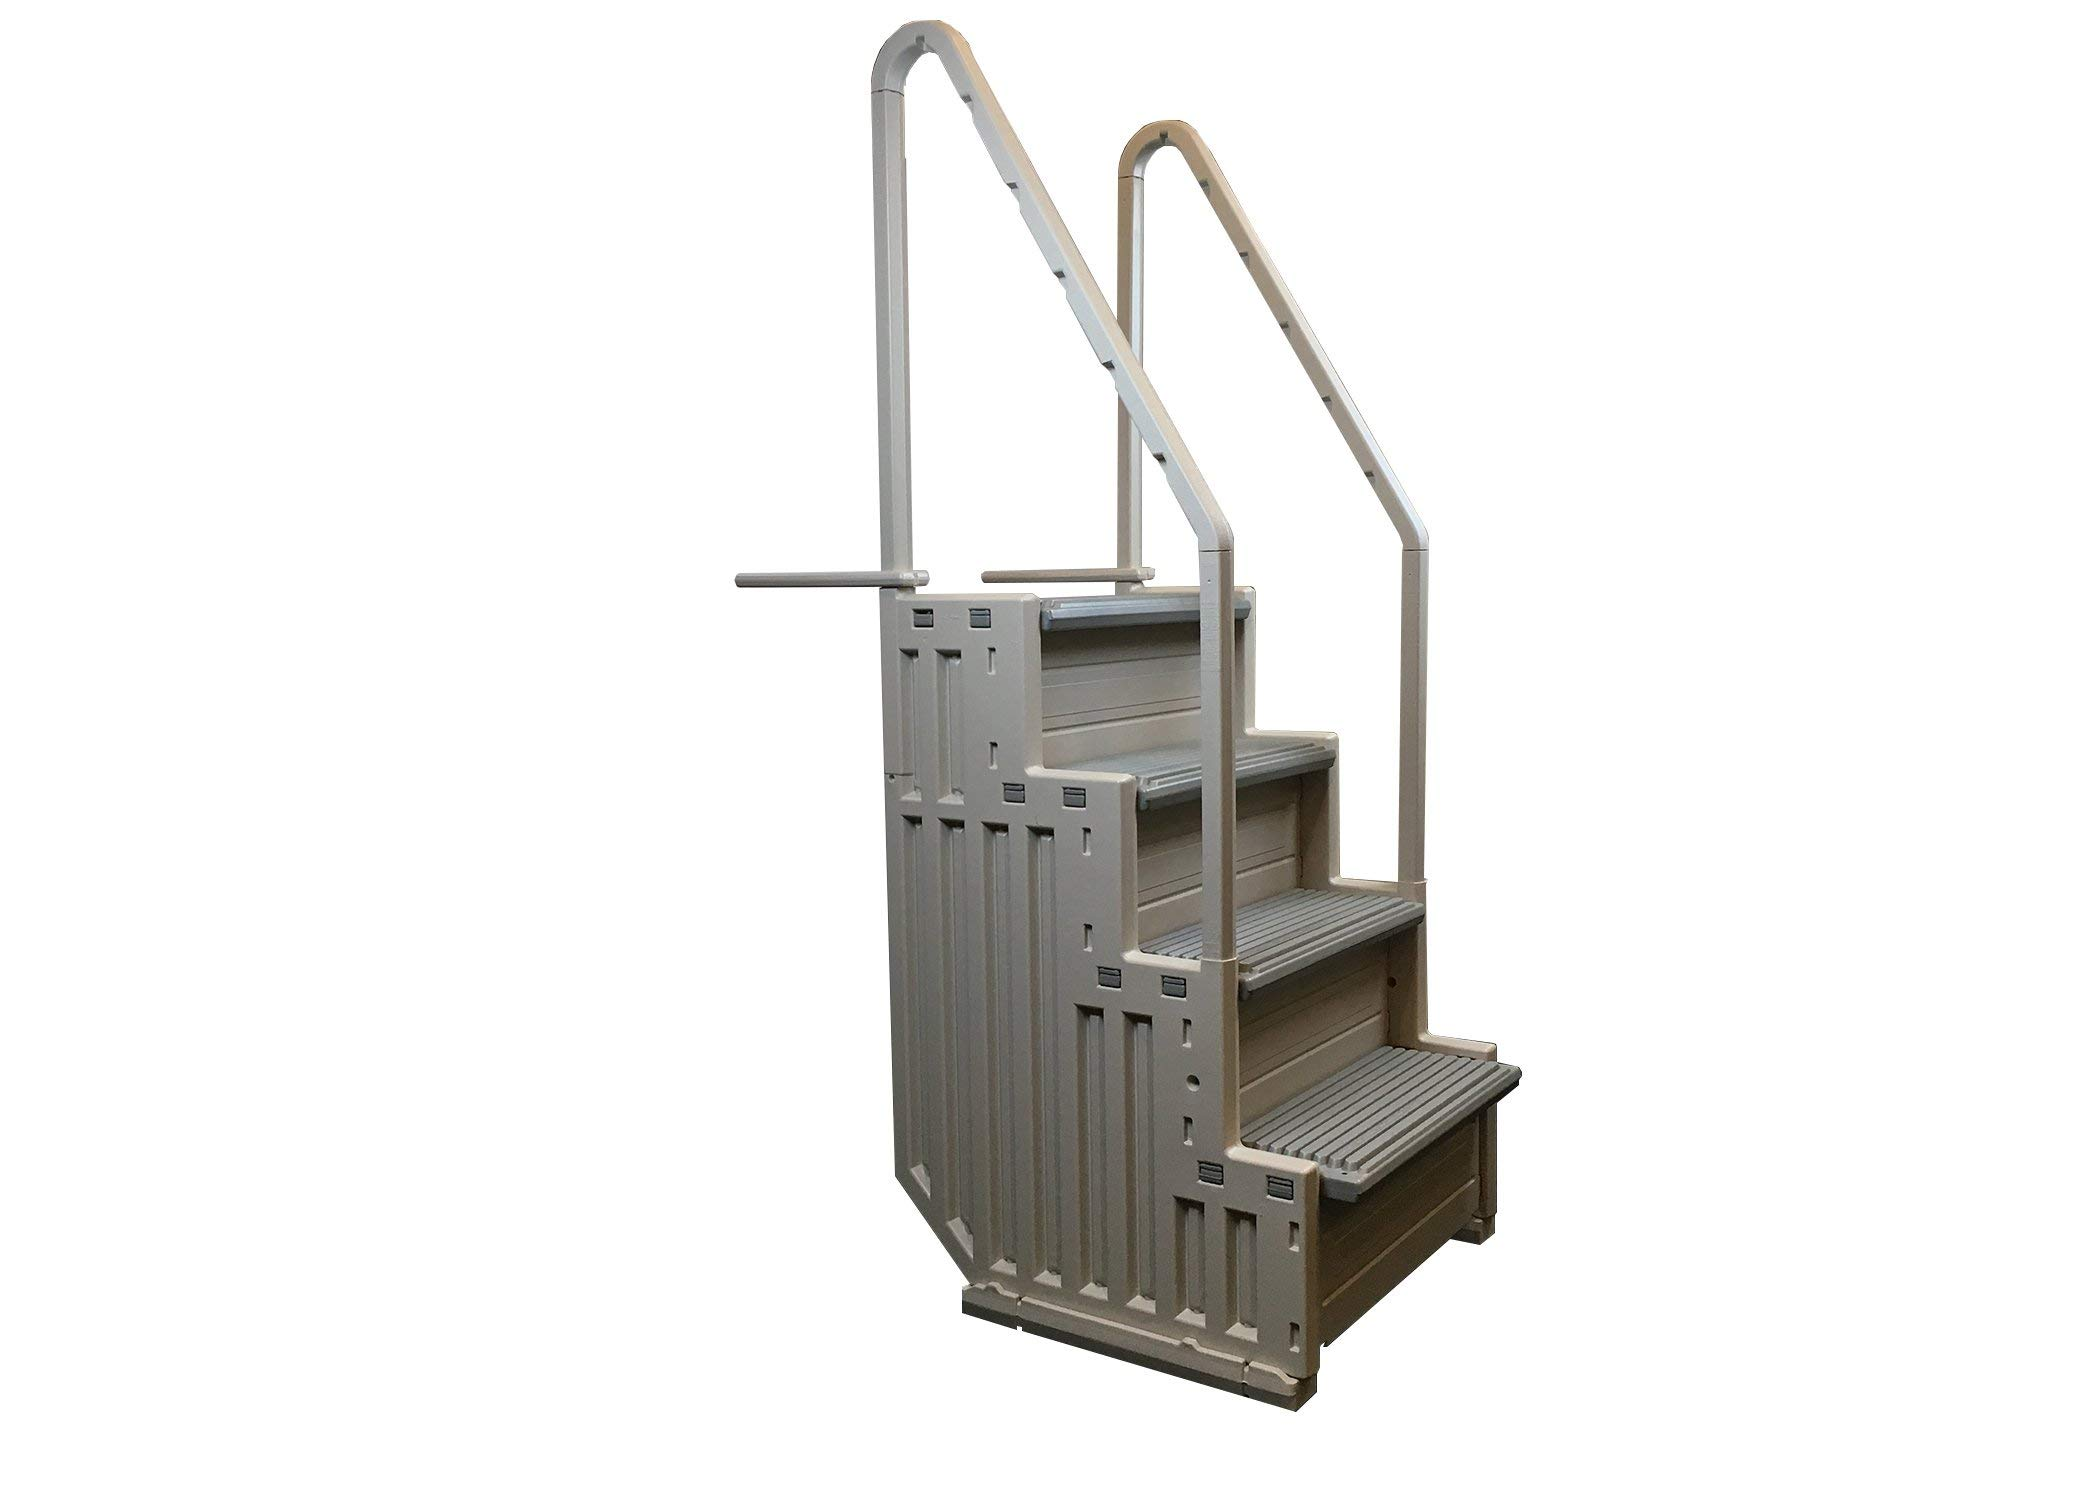 Confer Staircase Style Above Ground Pool Steps Warm Grey - STEP-1-X by Confer Plastics